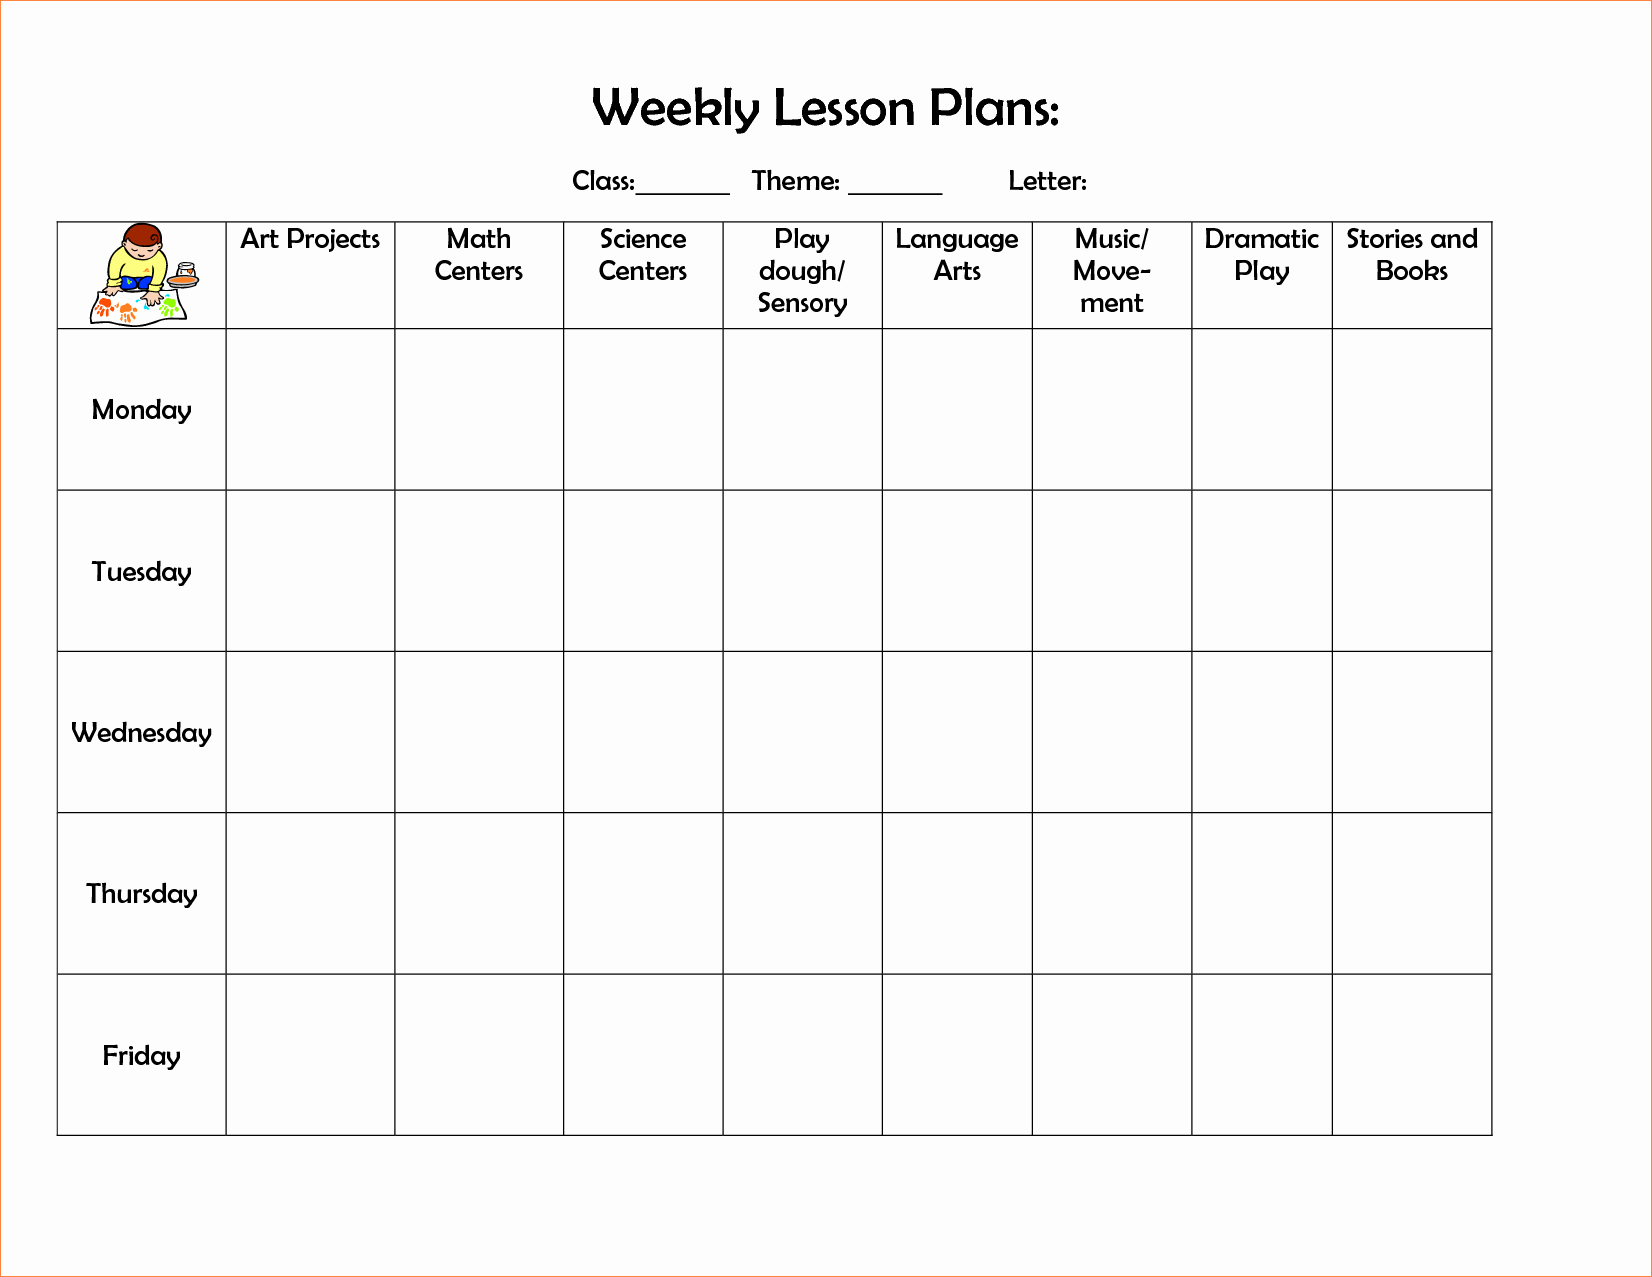 4 Preschool Weekly Lesson Plan Templatereport Template